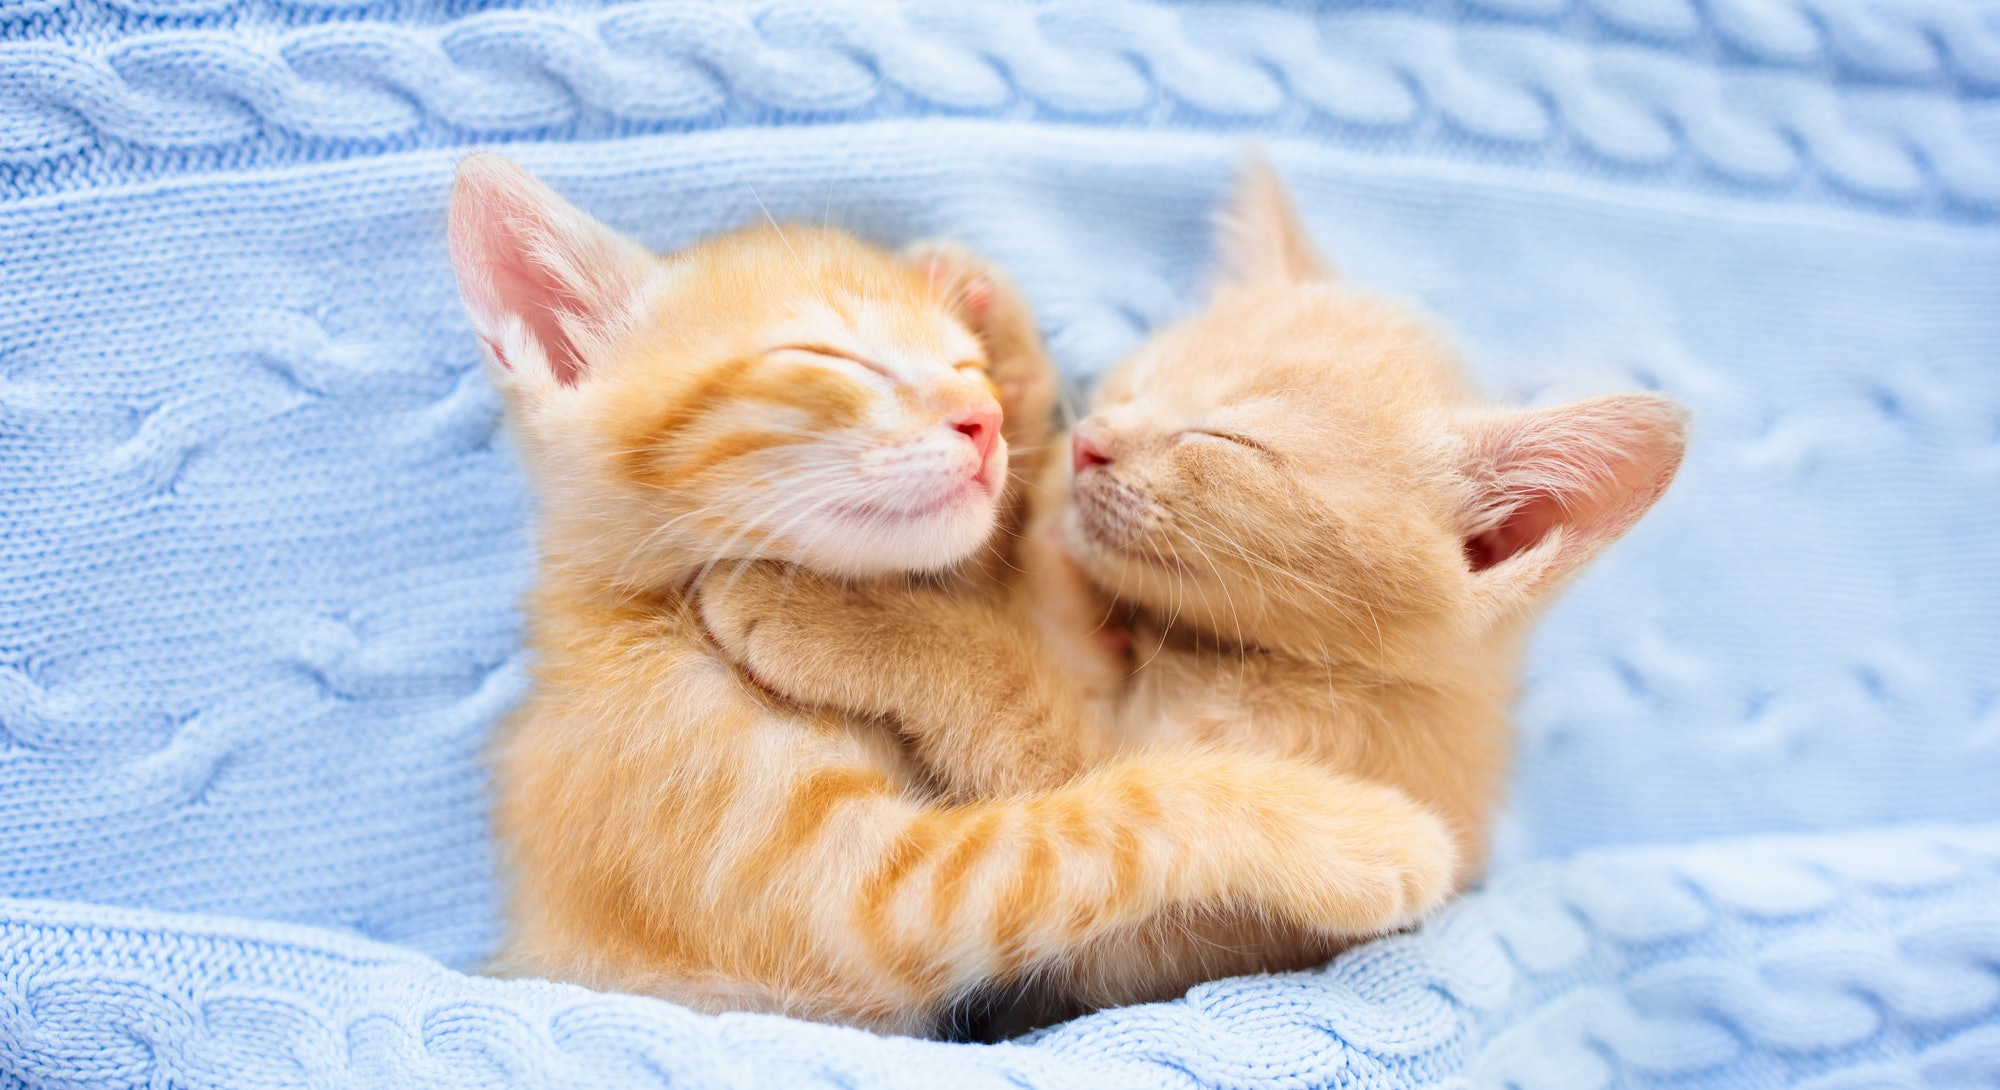 Baby cat sleeping. Ginger kitten on couch under knitted blanket. Two cats cuddling and hugging. Dome...